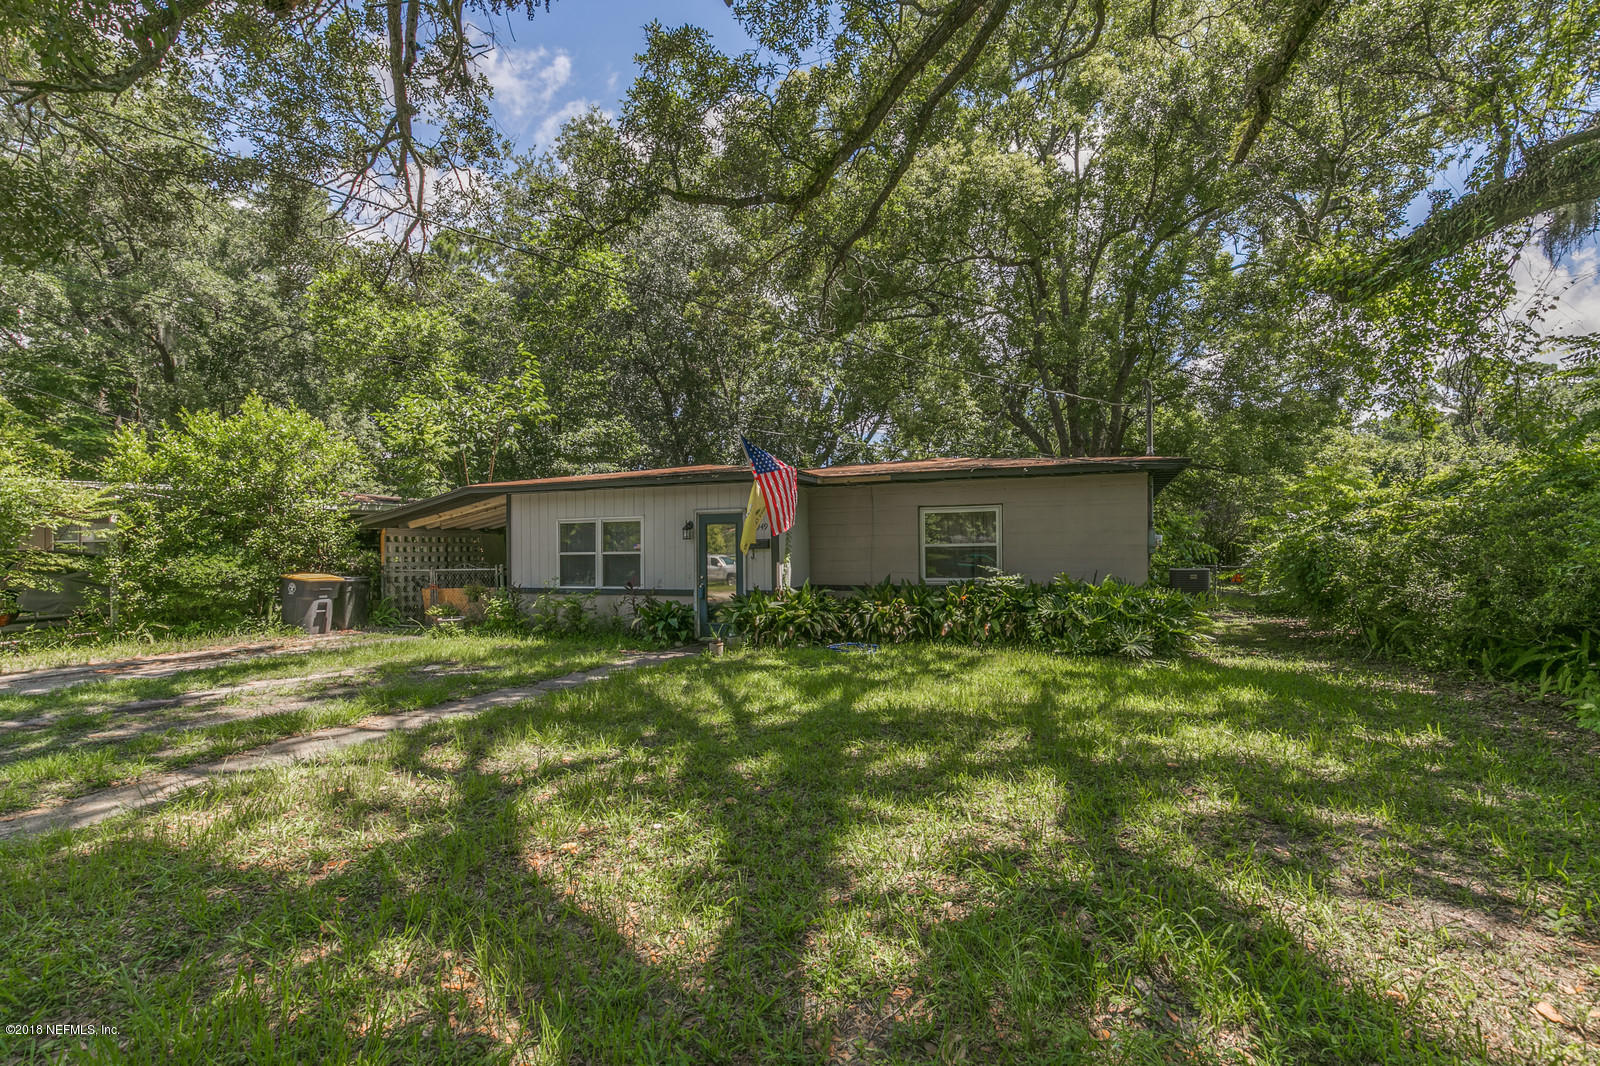 3949 ABBY, JACKSONVILLE, FLORIDA 32207, 3 Bedrooms Bedrooms, ,2 BathroomsBathrooms,Residential - single family,For sale,ABBY,925398